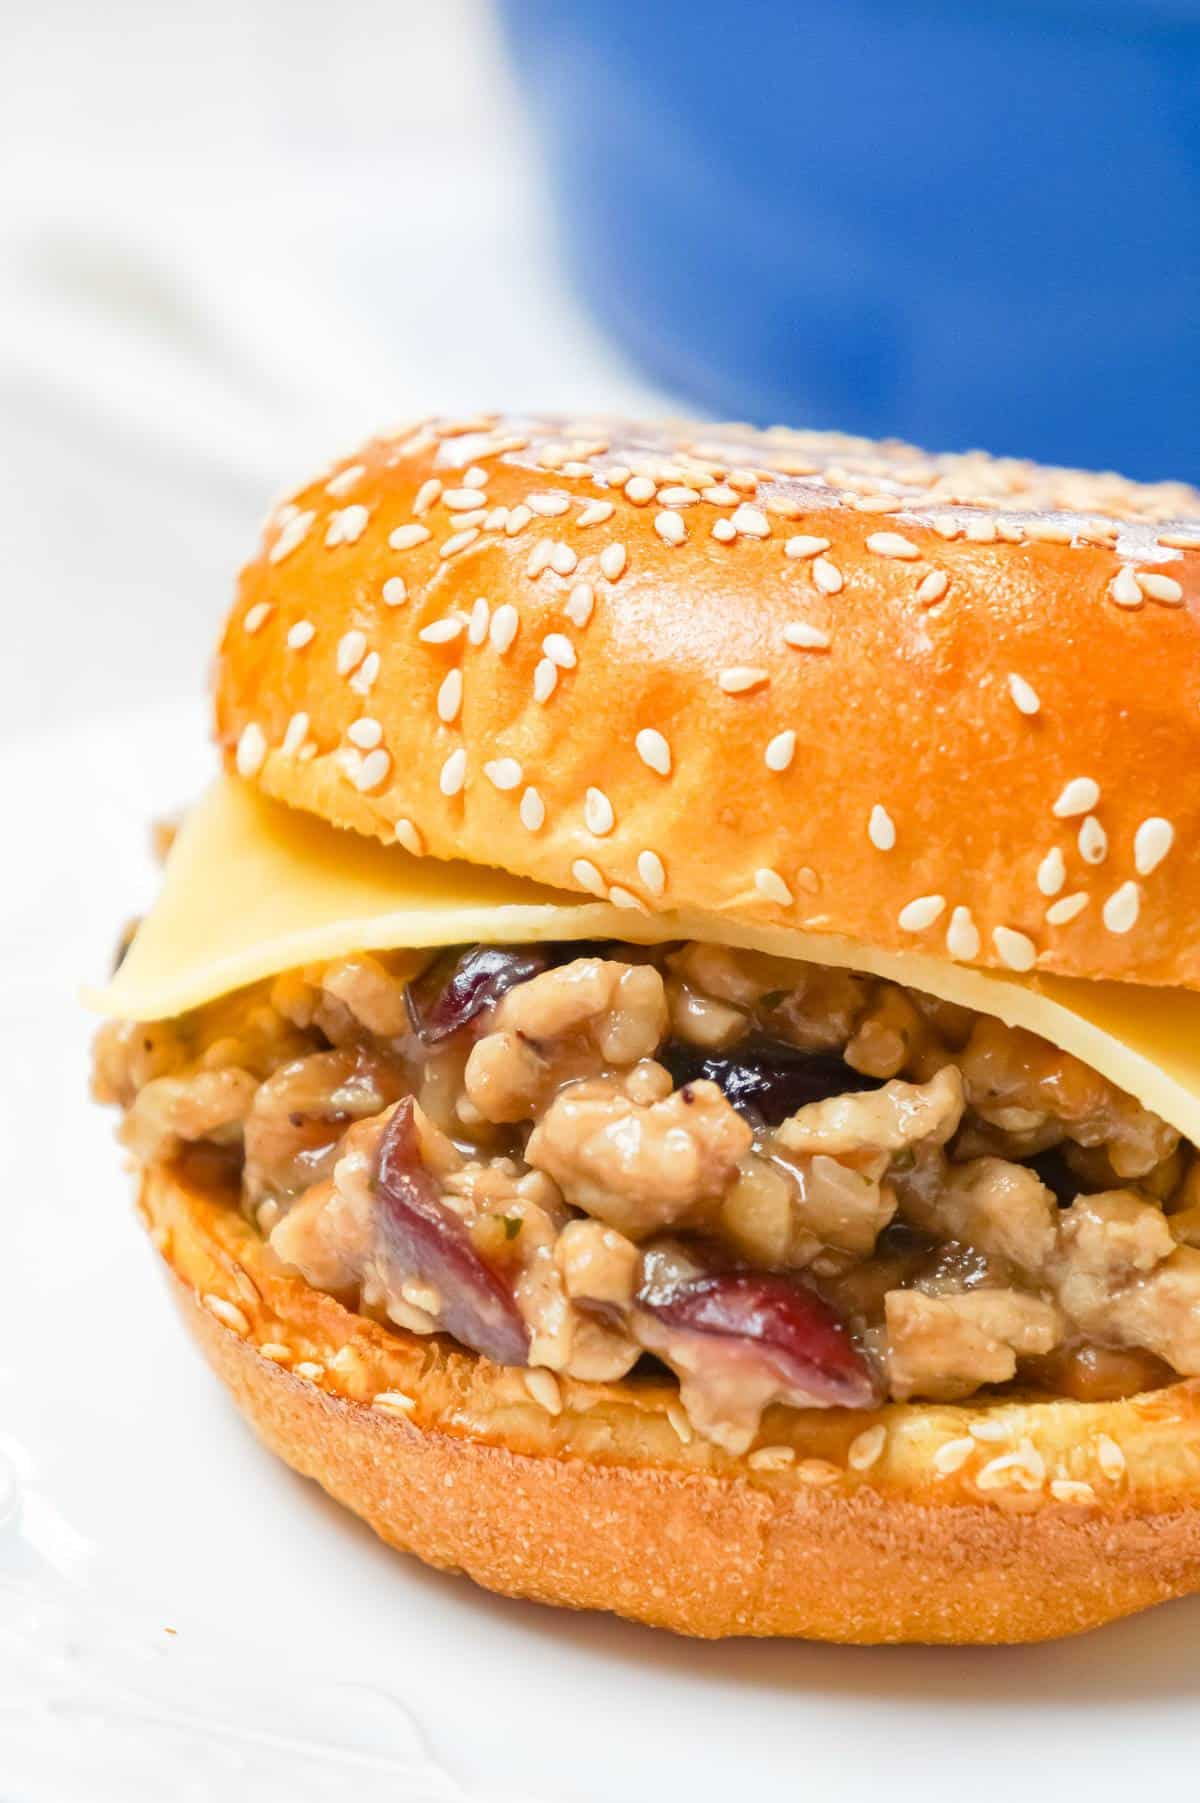 Turkey Dinner Sloppy Joes are an easy weeknight dinner recipe made with ground turkey and loaded with gravy, stove top stuffing mix, cranberry sauce and Havarti cheese all on served on Brioche buns.